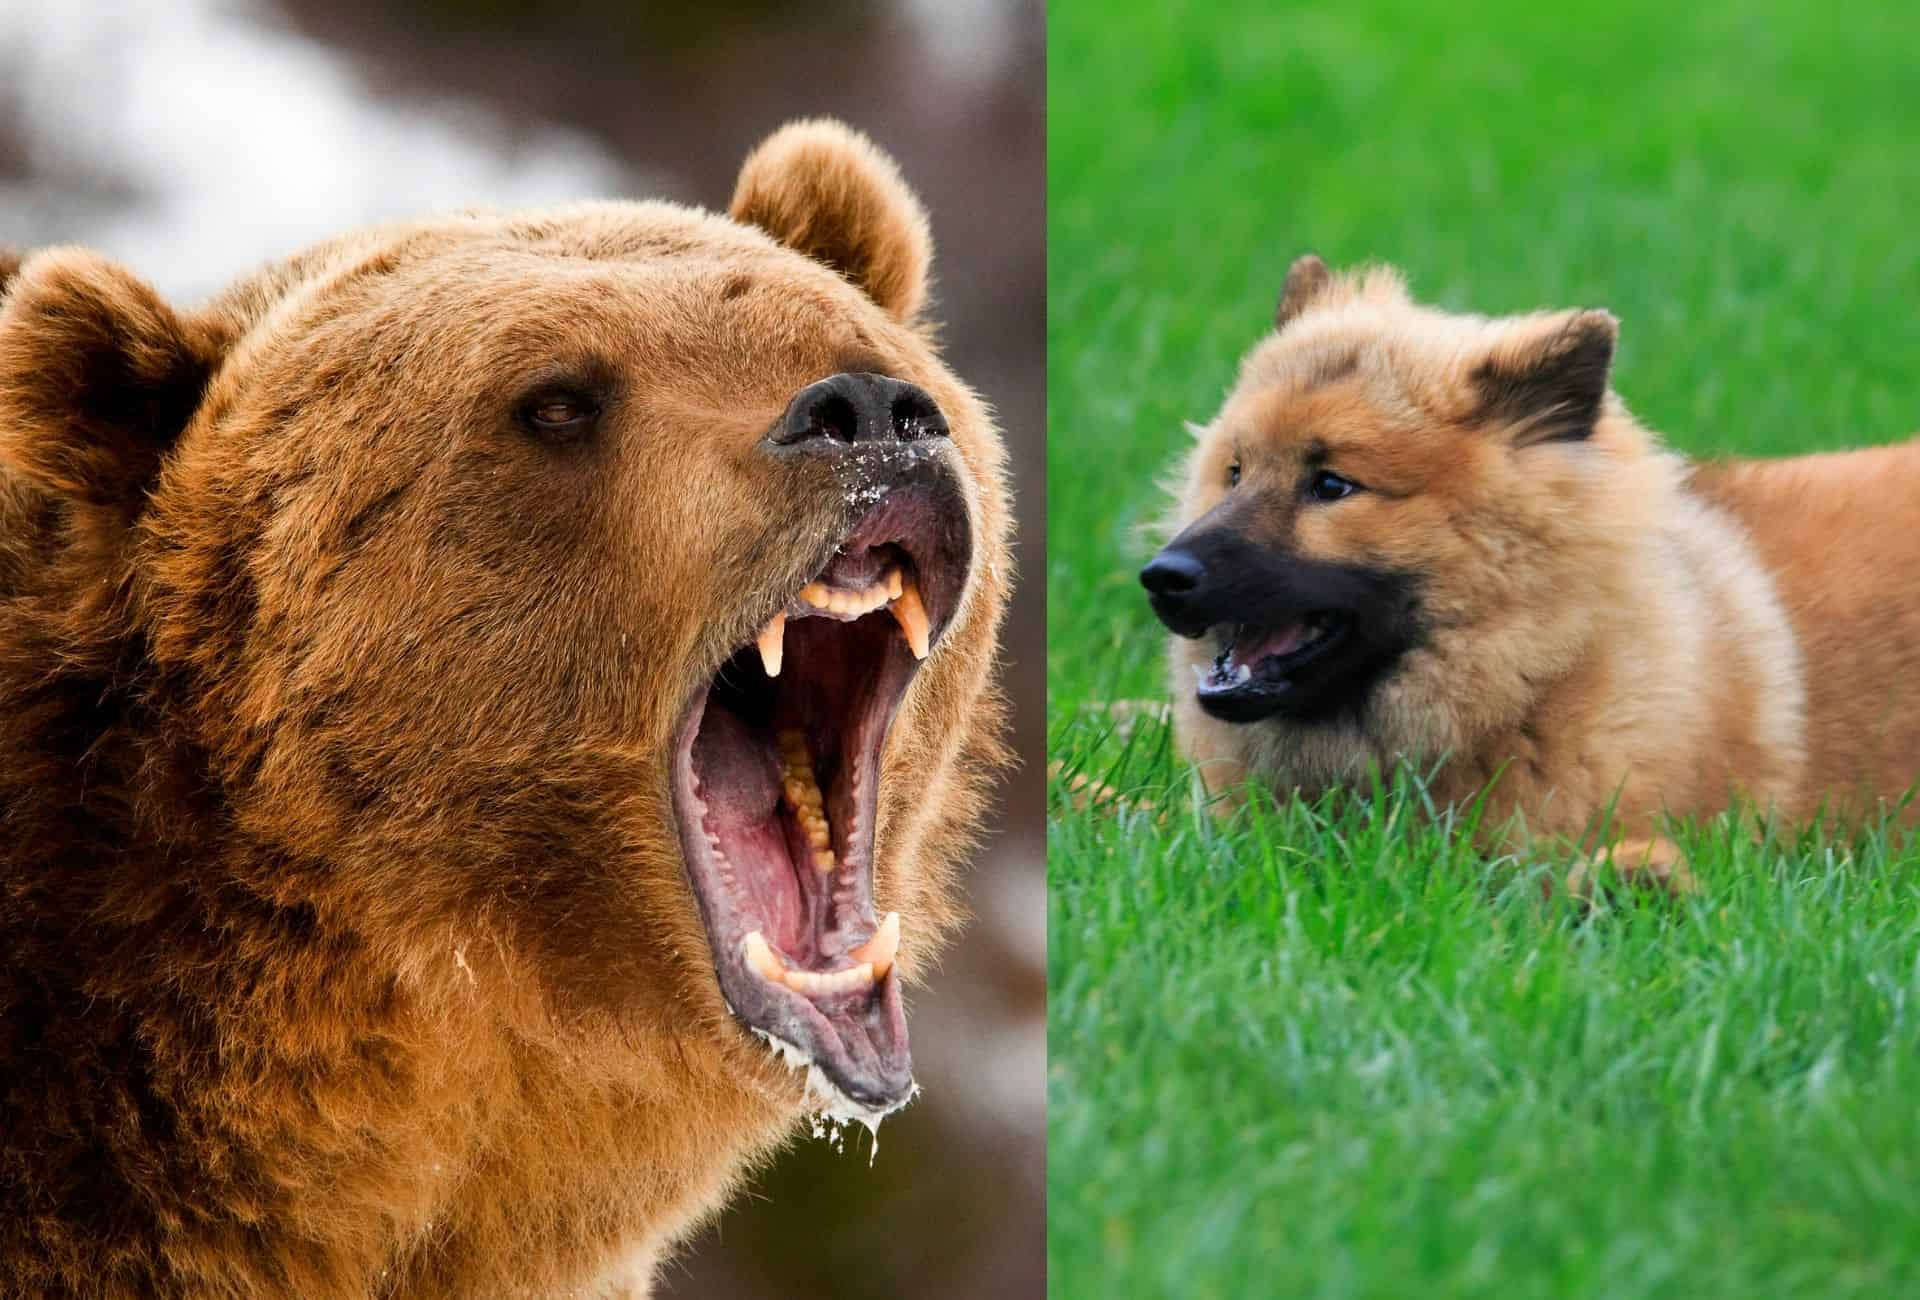 Menacing Grizzly bear next to a fierce-looking Eurasier waiting in the grass.